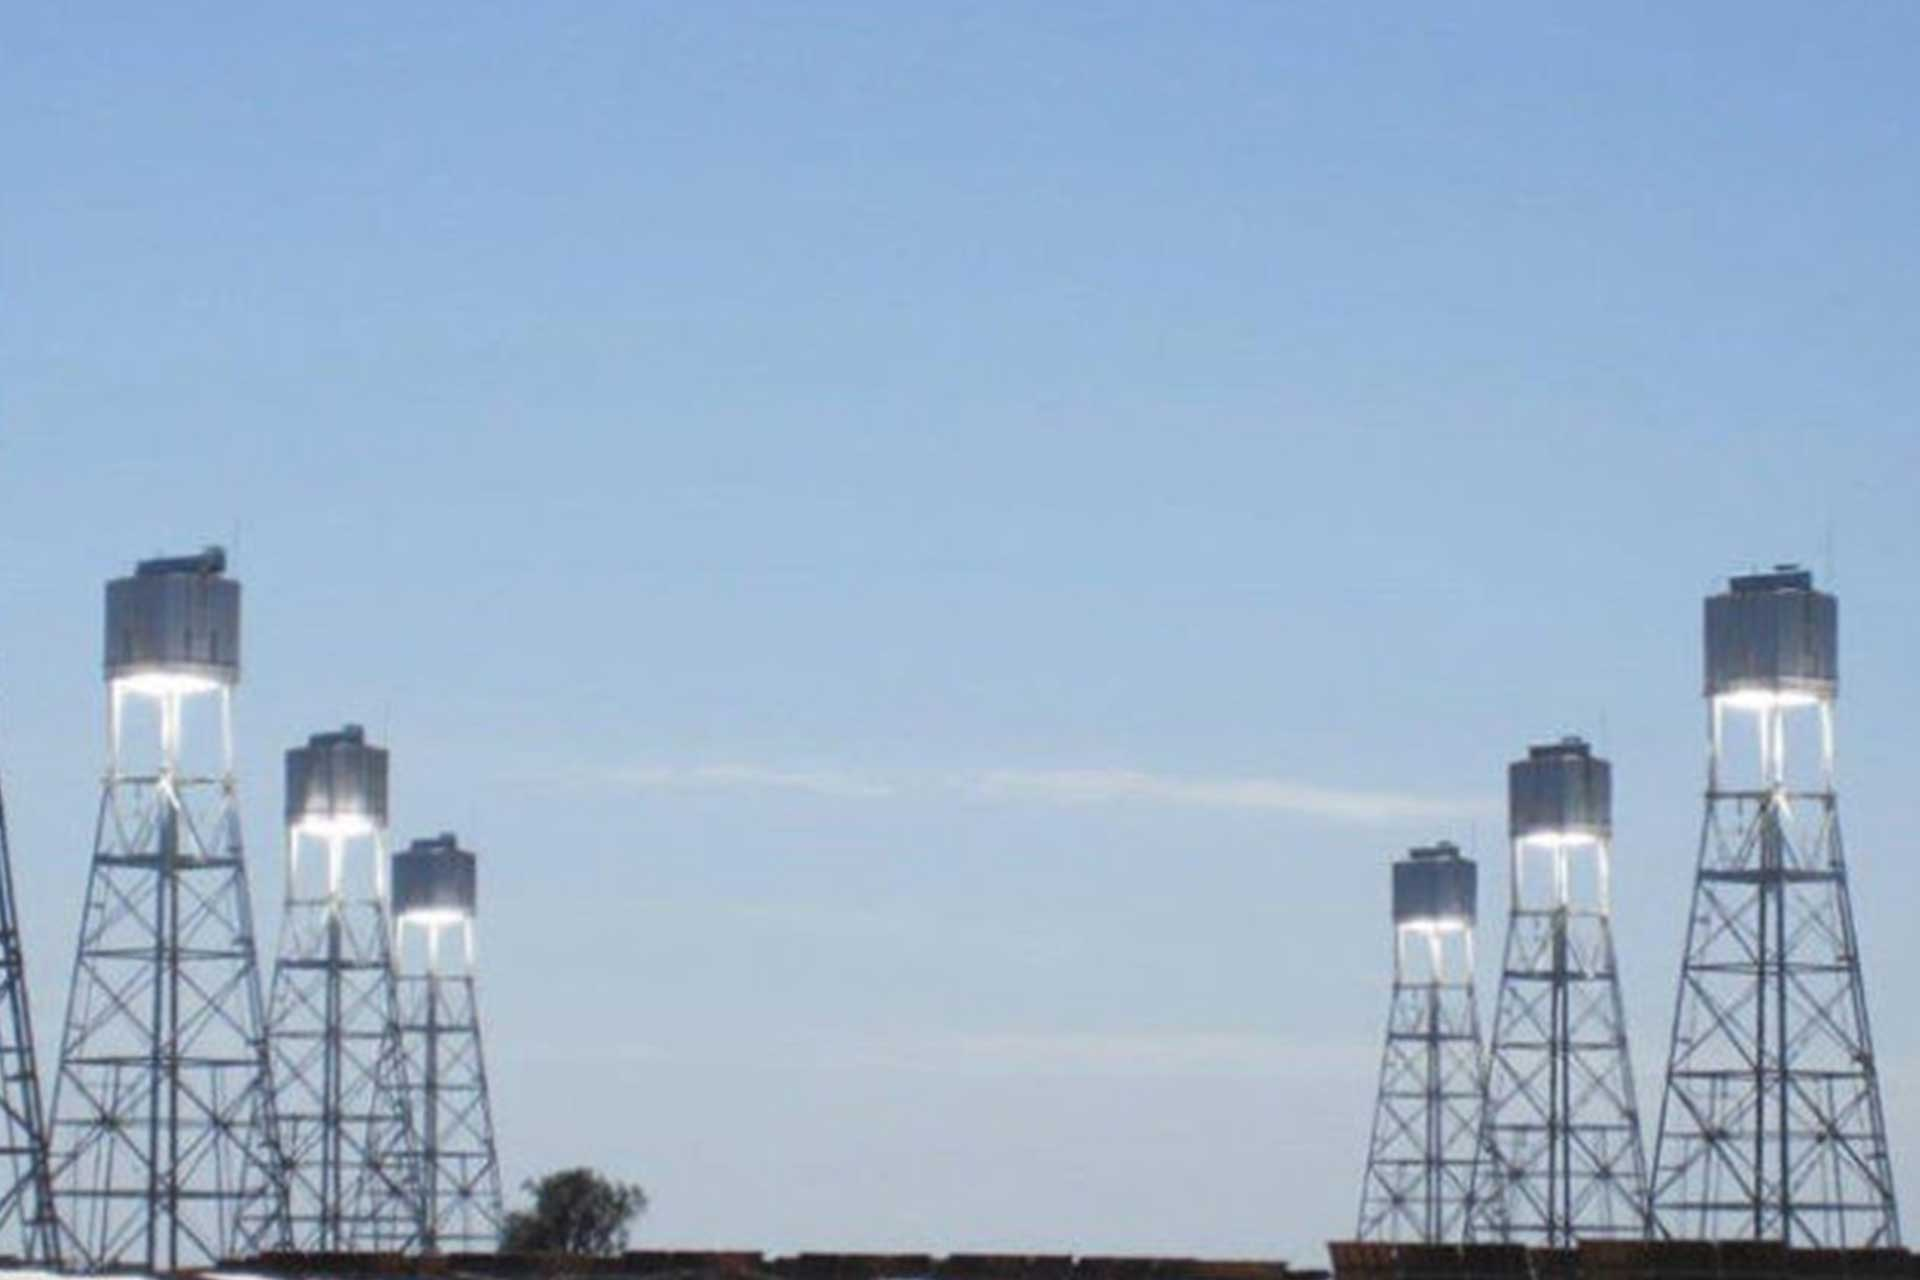 ELEMEC GBC - Projects, Alassa - 50MW Concentrated Solar Thermal Power Generation